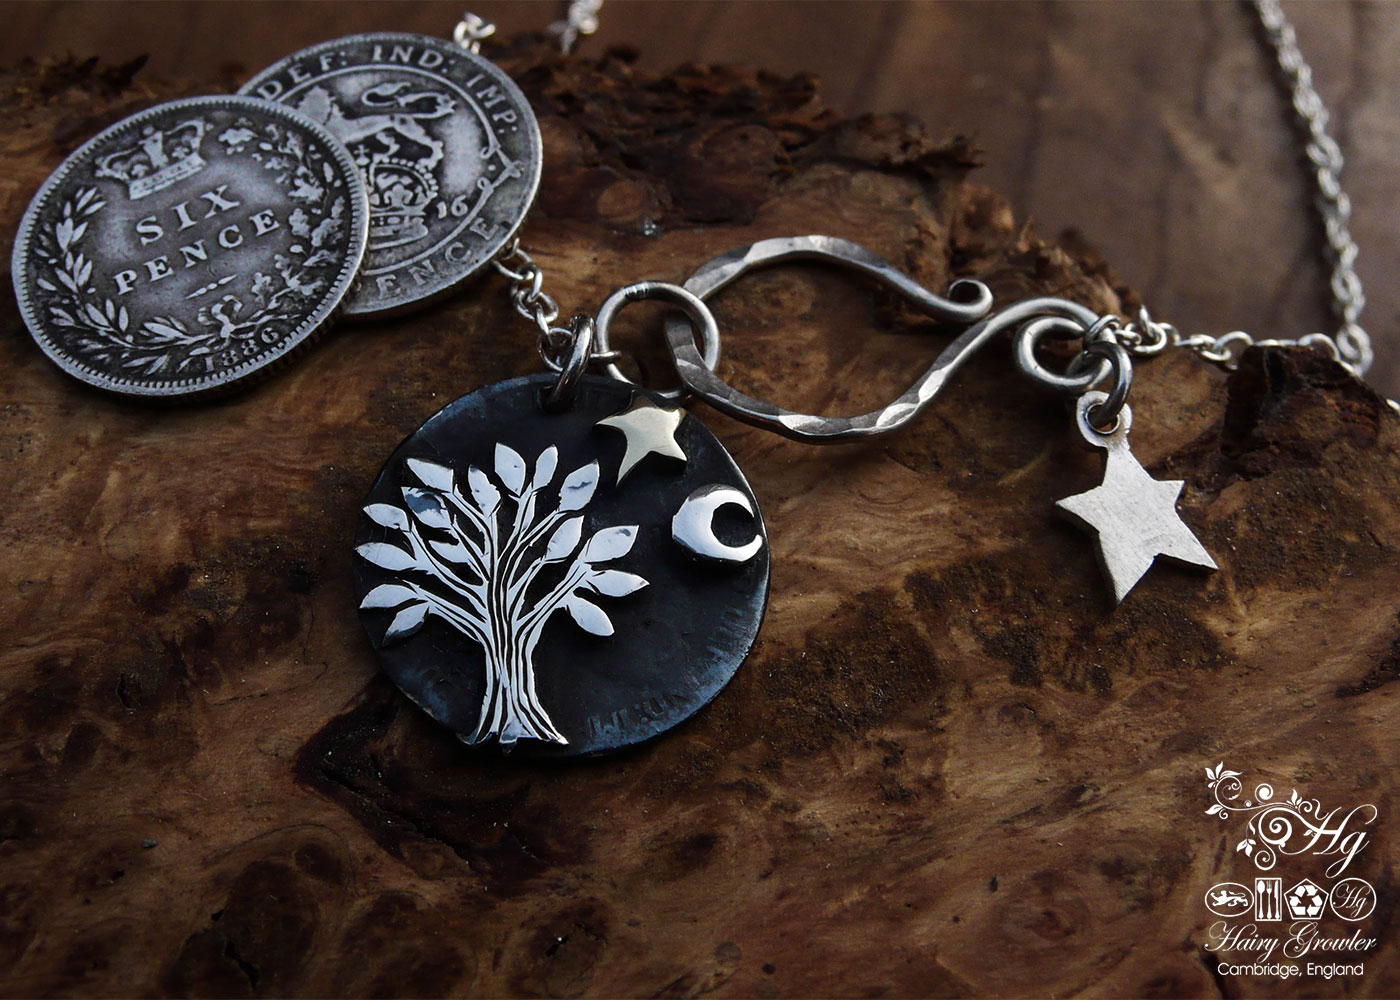 sterling silver sixpence coin transformed into a sweet little tree necklace